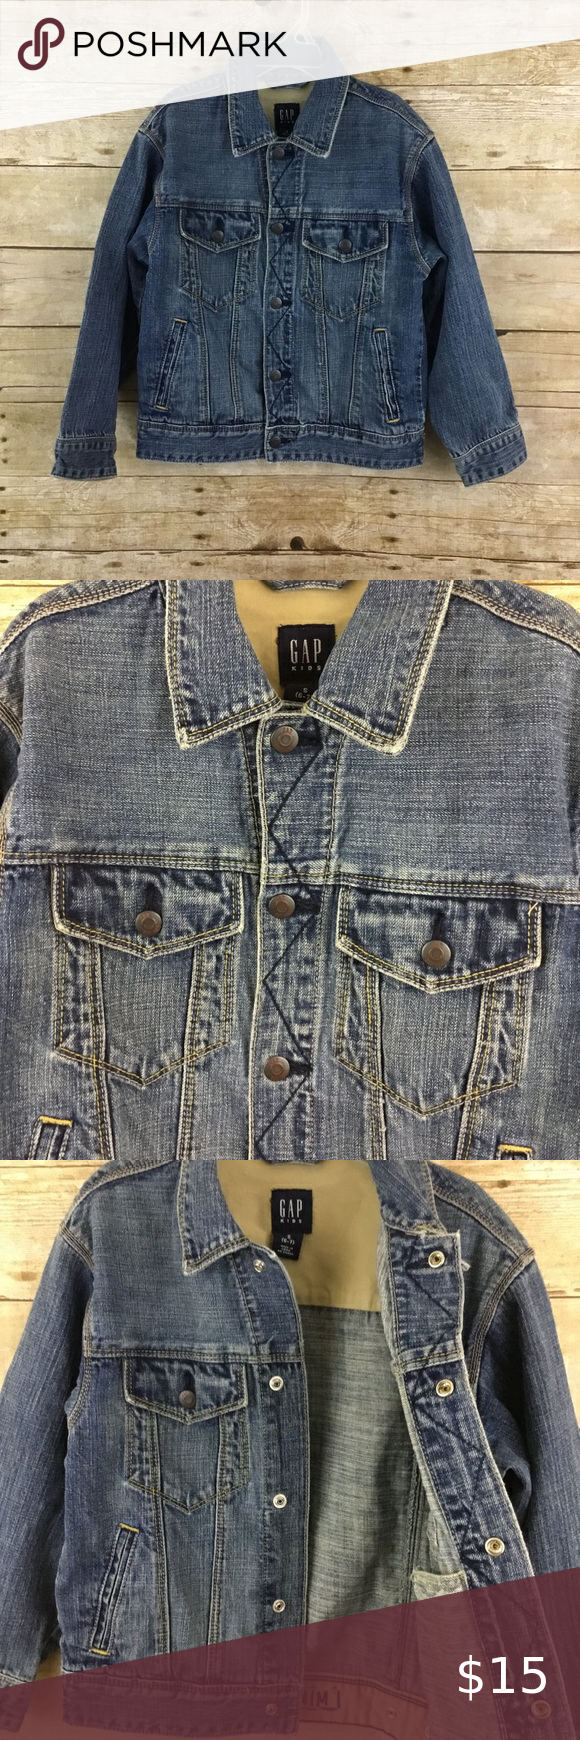 Gap Kids Jean Jacket Gap Kids Jean Jacket Size Small 6 7 Condition Preowned Item S26 Please See Pictures For Accurat Kids Jeans Jacket Jeans Kids Jackets [ 1740 x 580 Pixel ]